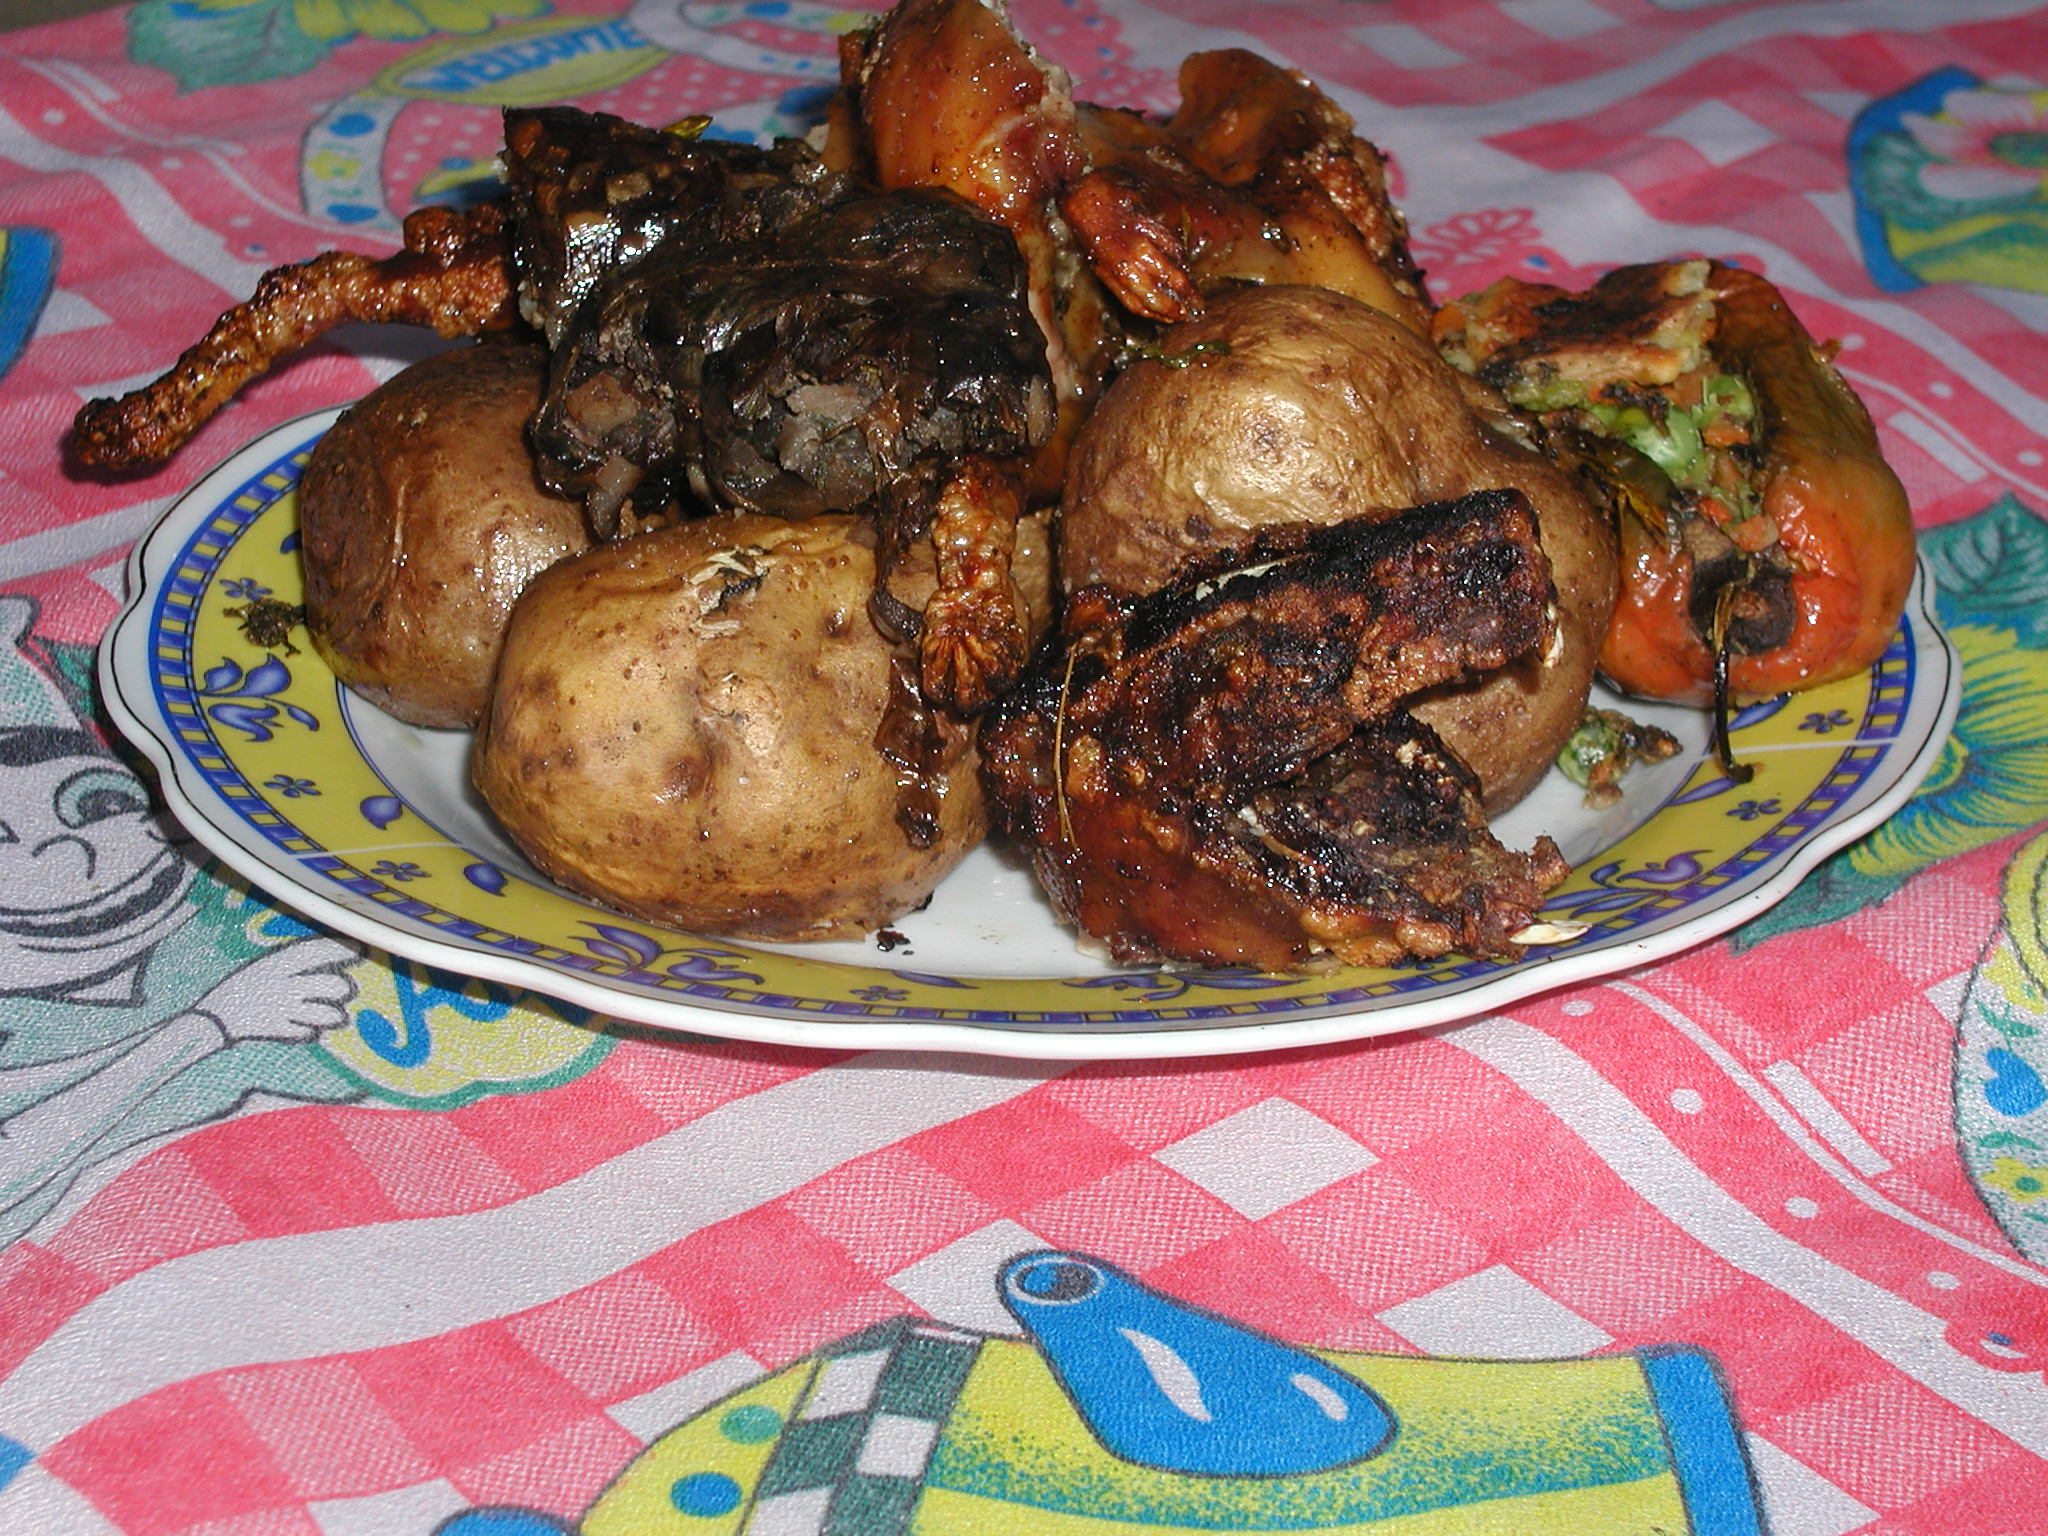 Our meal of guinea pig..jpg